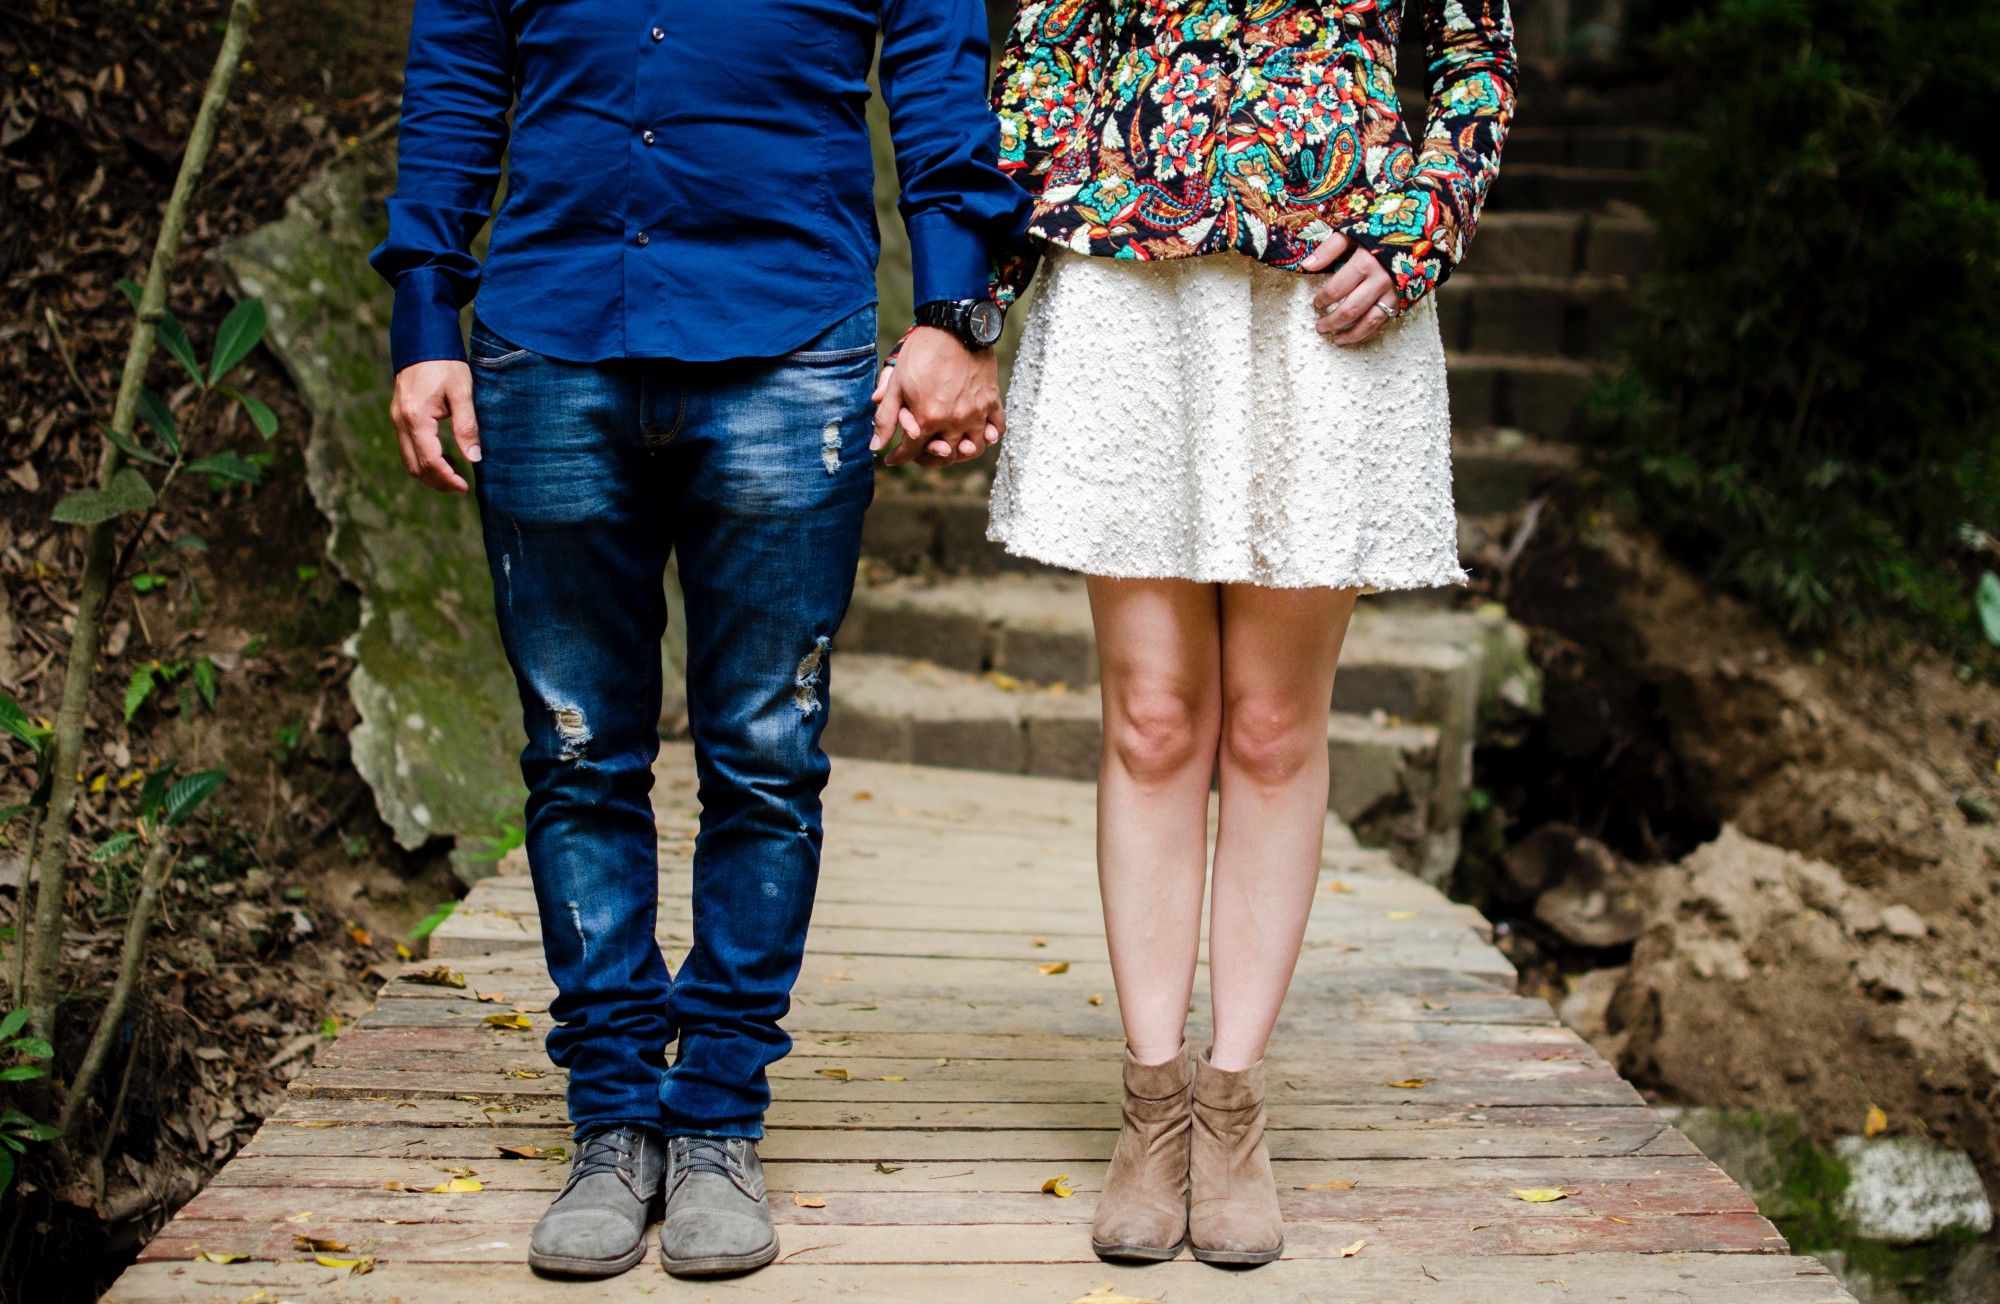 Marriage is performed in heaven - how to understand